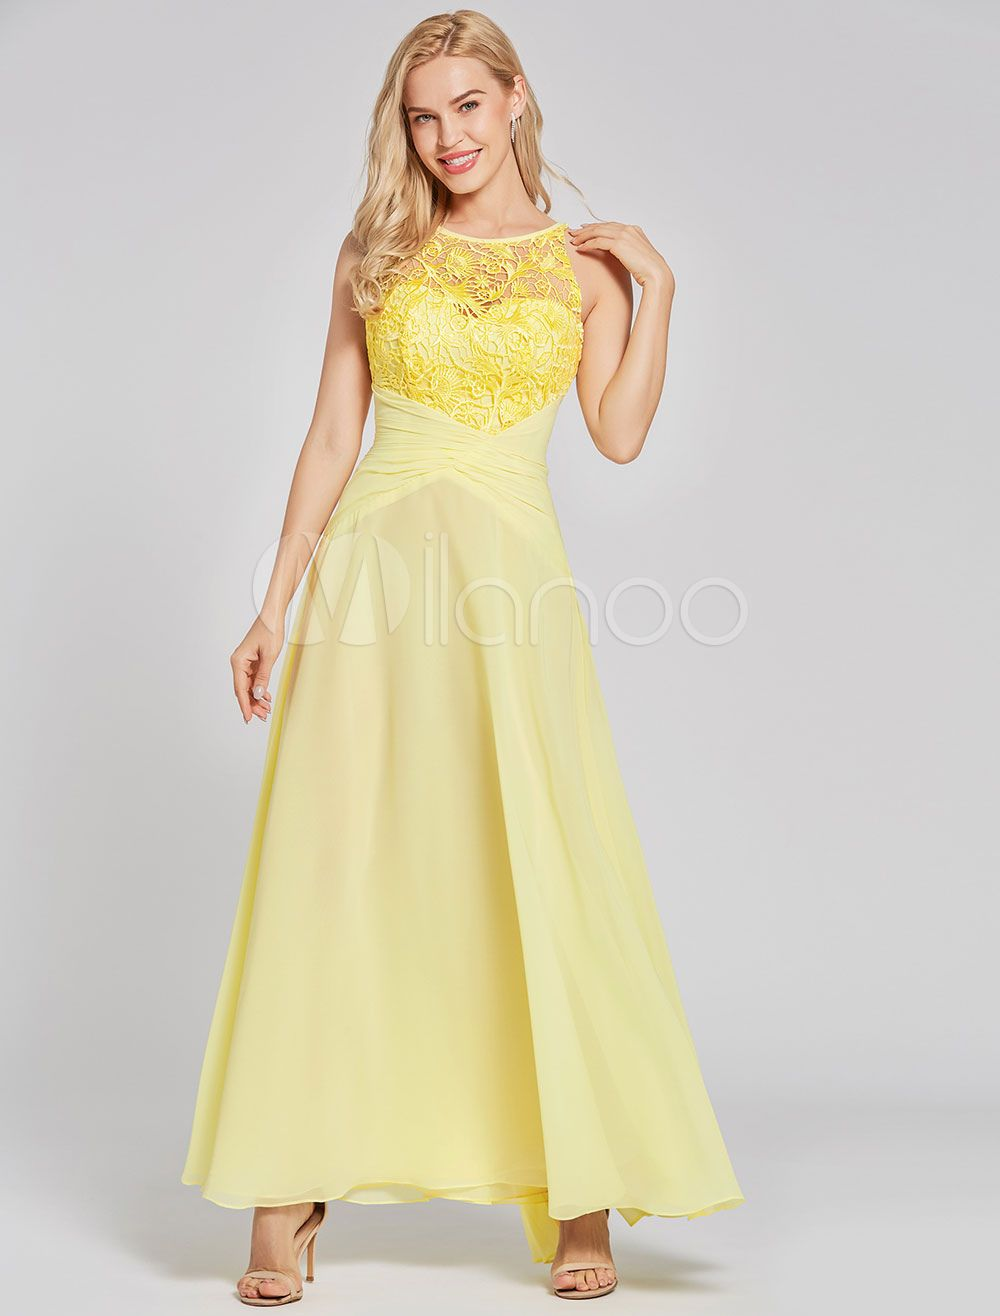 6ae81acbb Prom Dresses Long Yellow Chiffon Lace Backless Floor Length Party Dress   Yellow